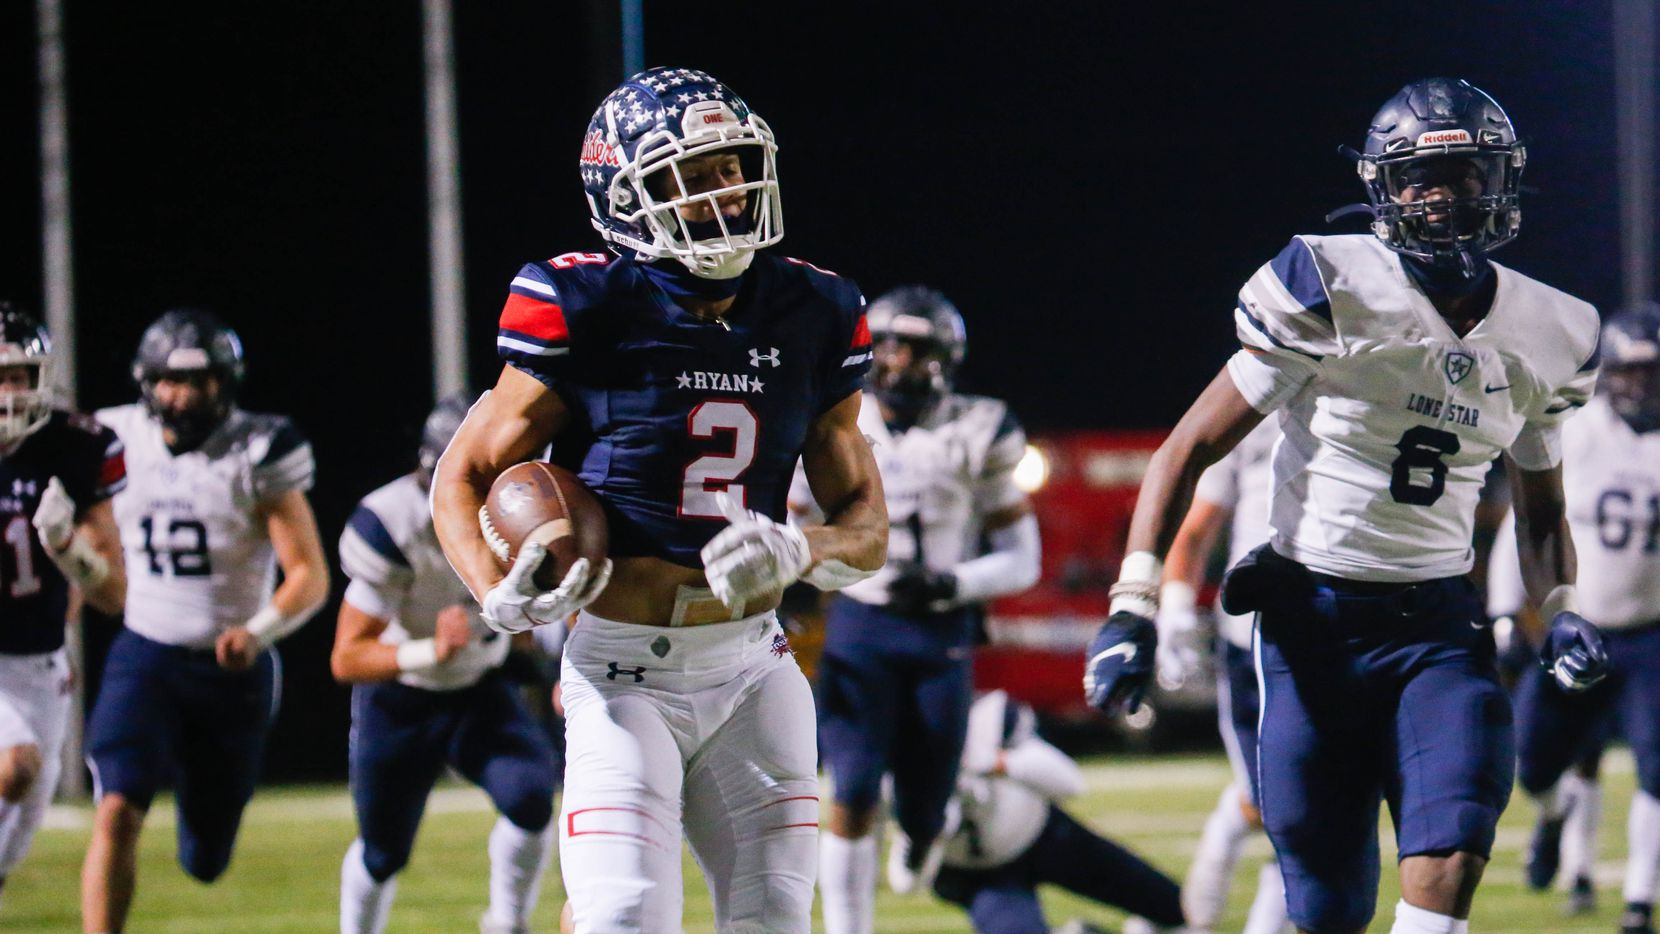 Denton Ryan's Billy Bowman Jr. (2) runs the ball during the second quarter of a football game against Frisco Lone Star at the C.H. Collins Complex in Denton on Thursday, Dec. 4, 2020. The game is tied at halftime, 14-14.